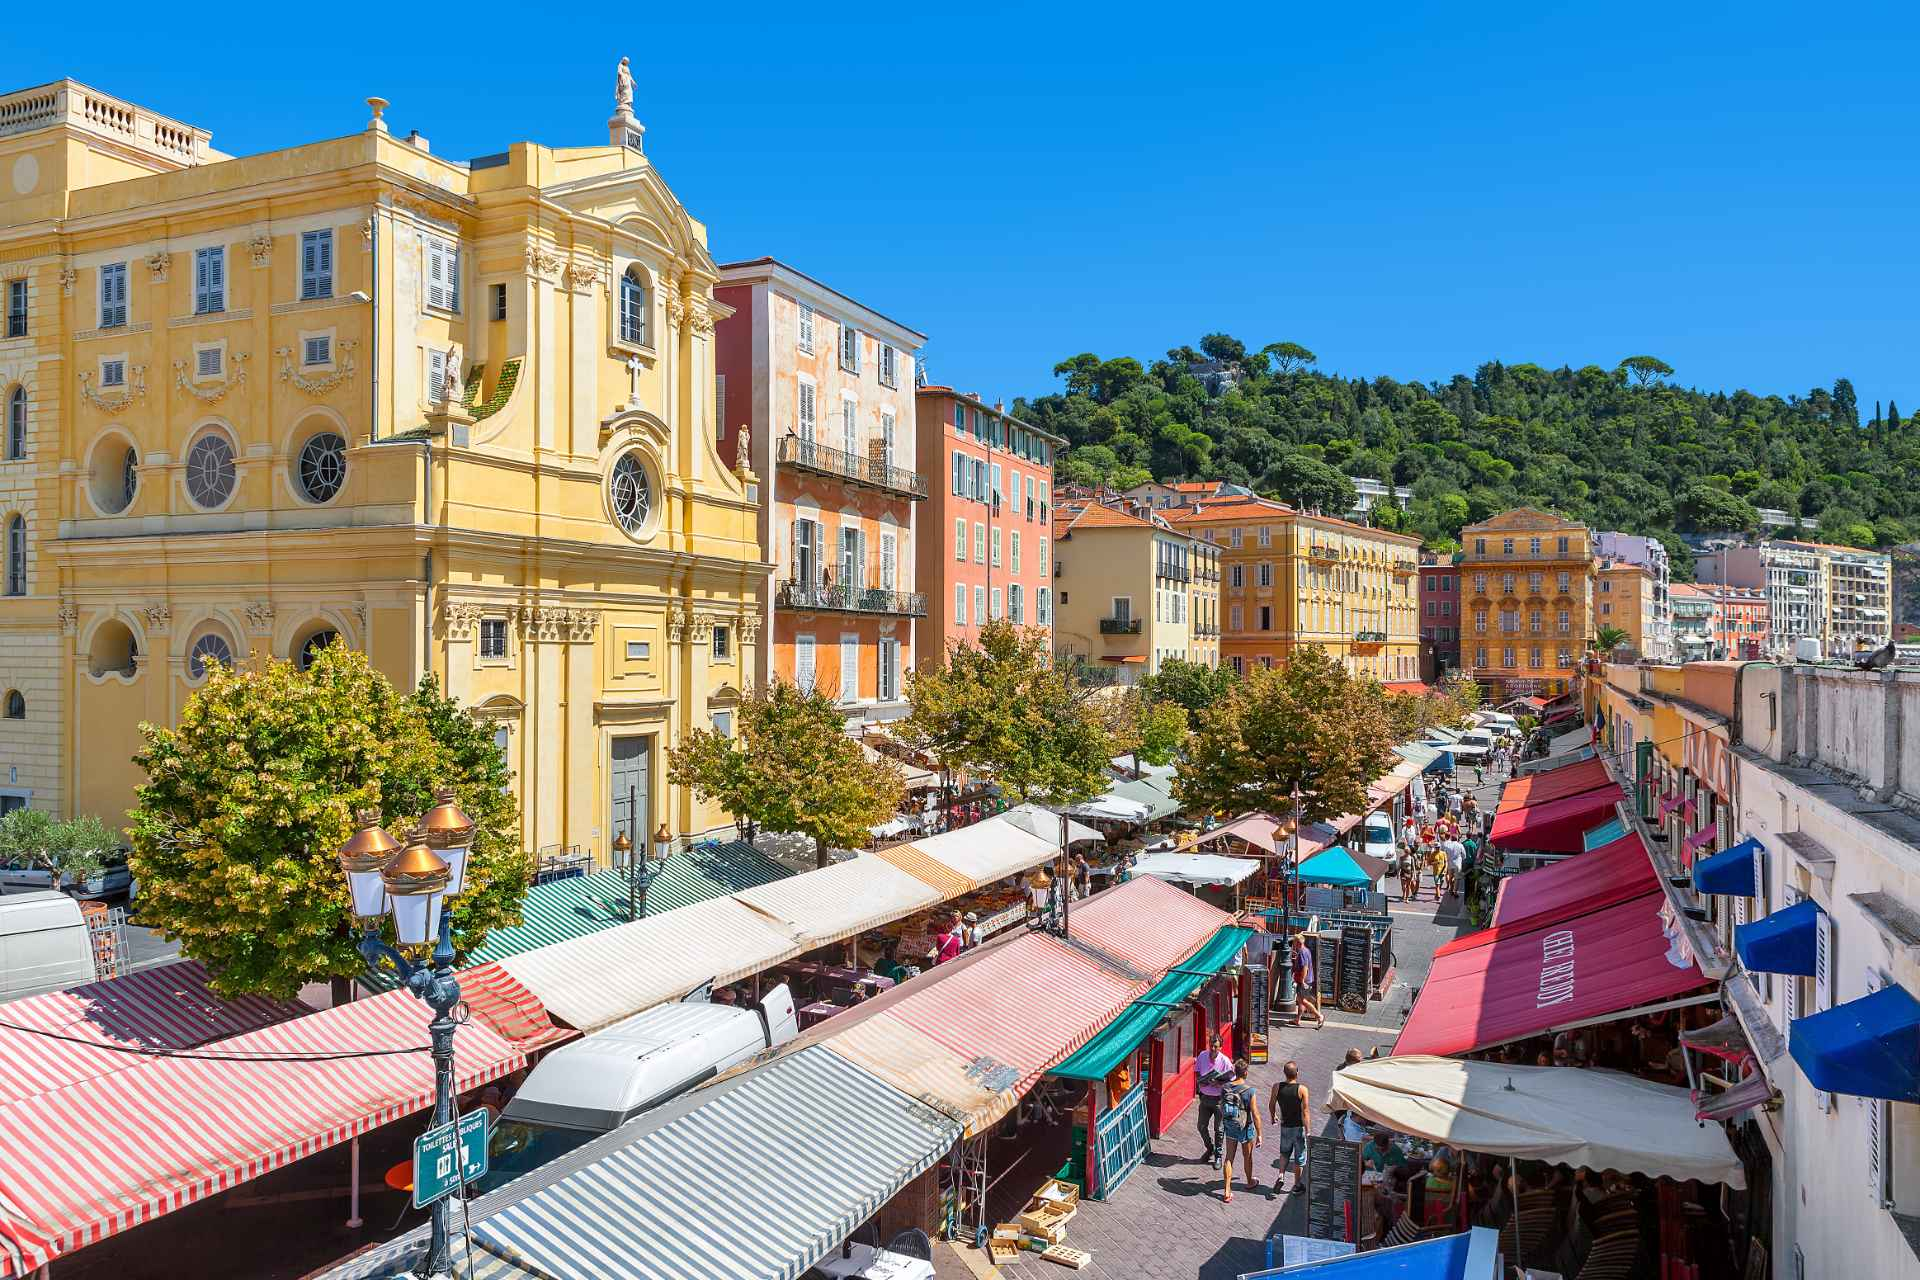 colourful-buildings-and-flower-market-in-european-city-in-summer-marché-aux-fleurs-cours-saleya-free-things-to-do-in-nice